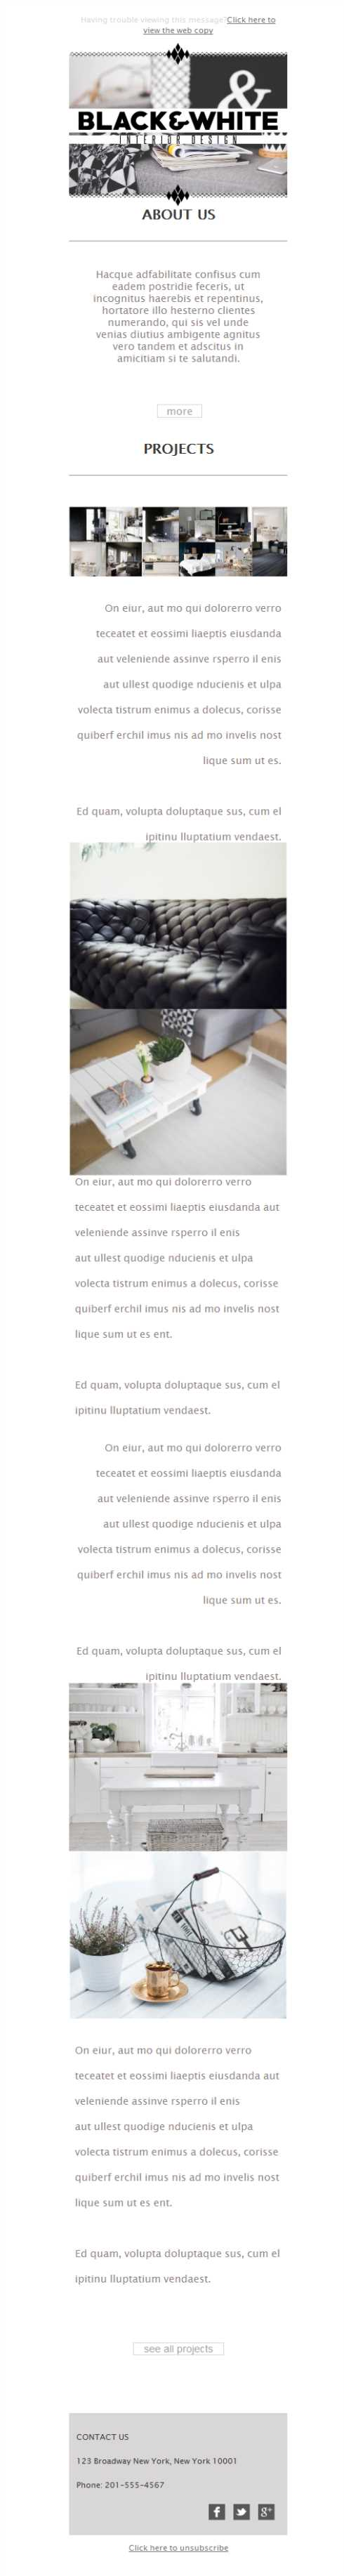 Free Newsletter Template Interior Design Project